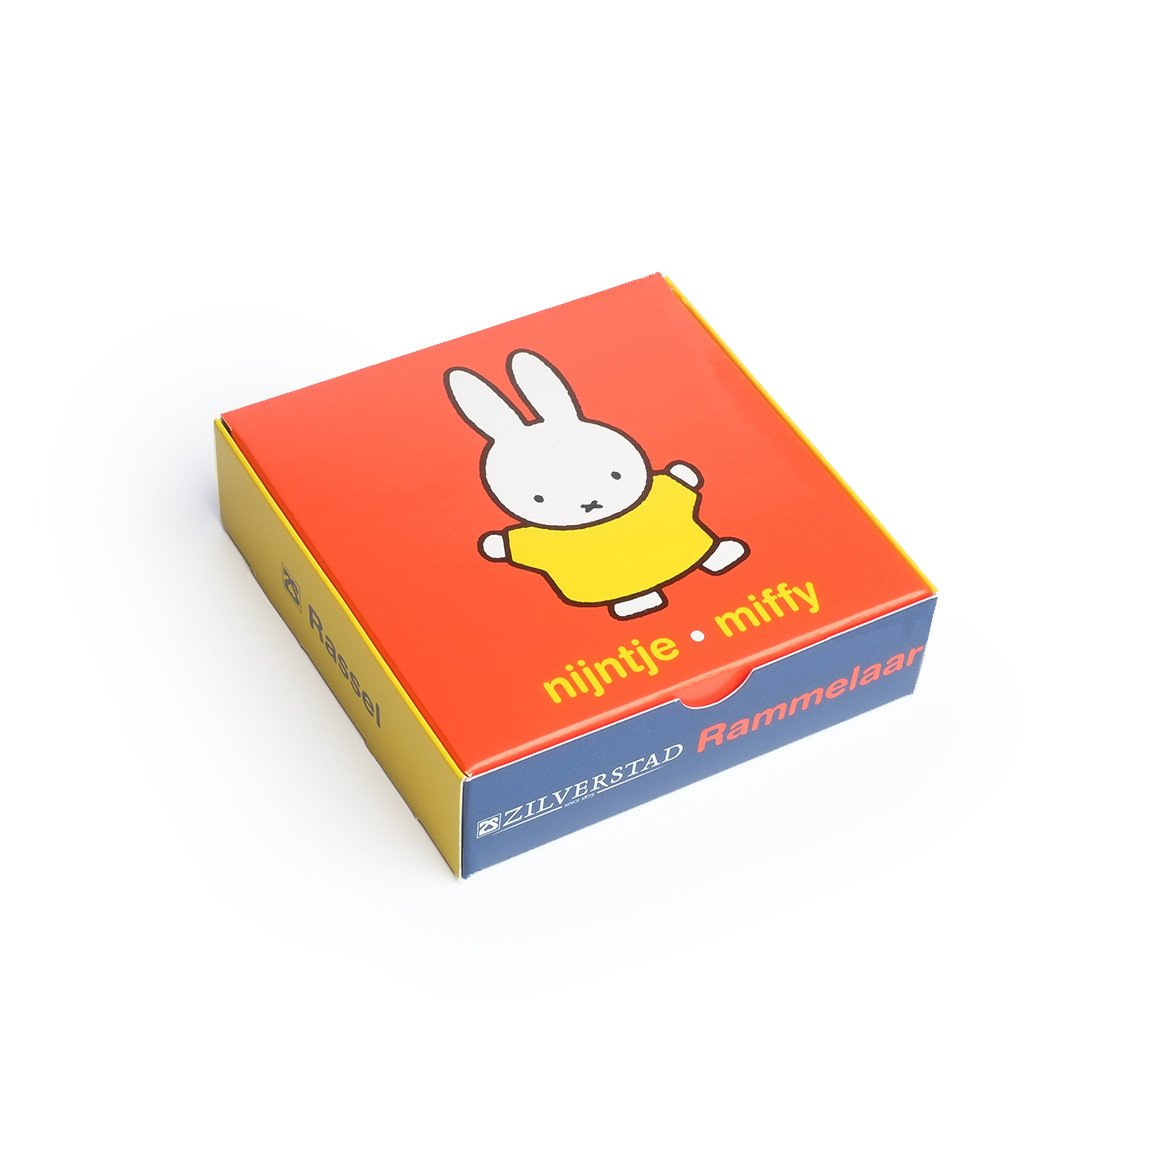 Miffy Club - Rattle - Miffy Zilverstad⎪Etiquette Clothiers